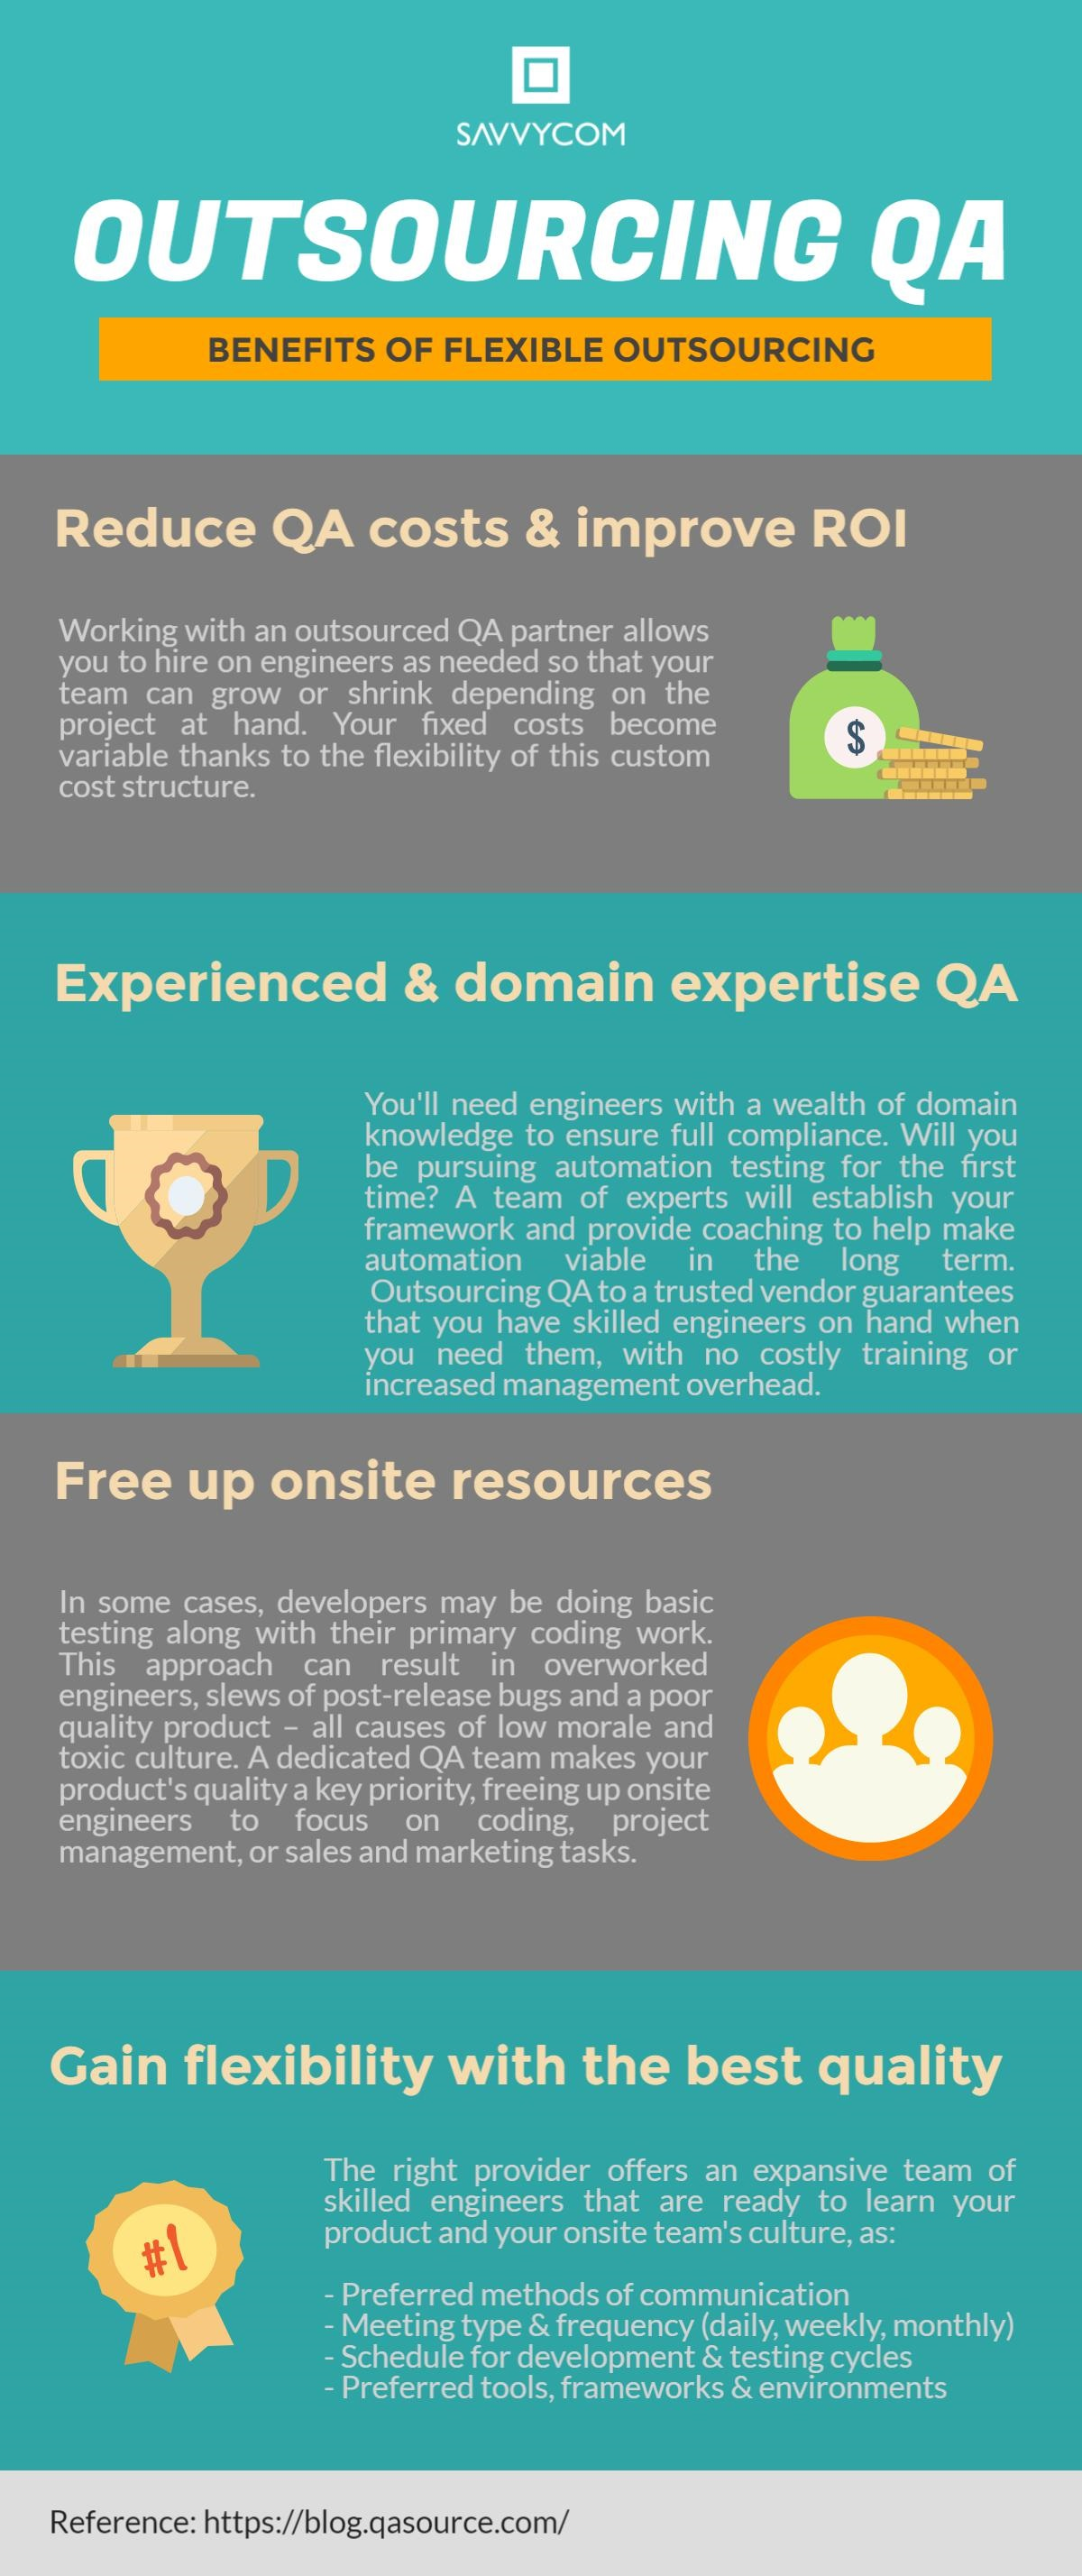 Outsourcing QA - What are its benefits